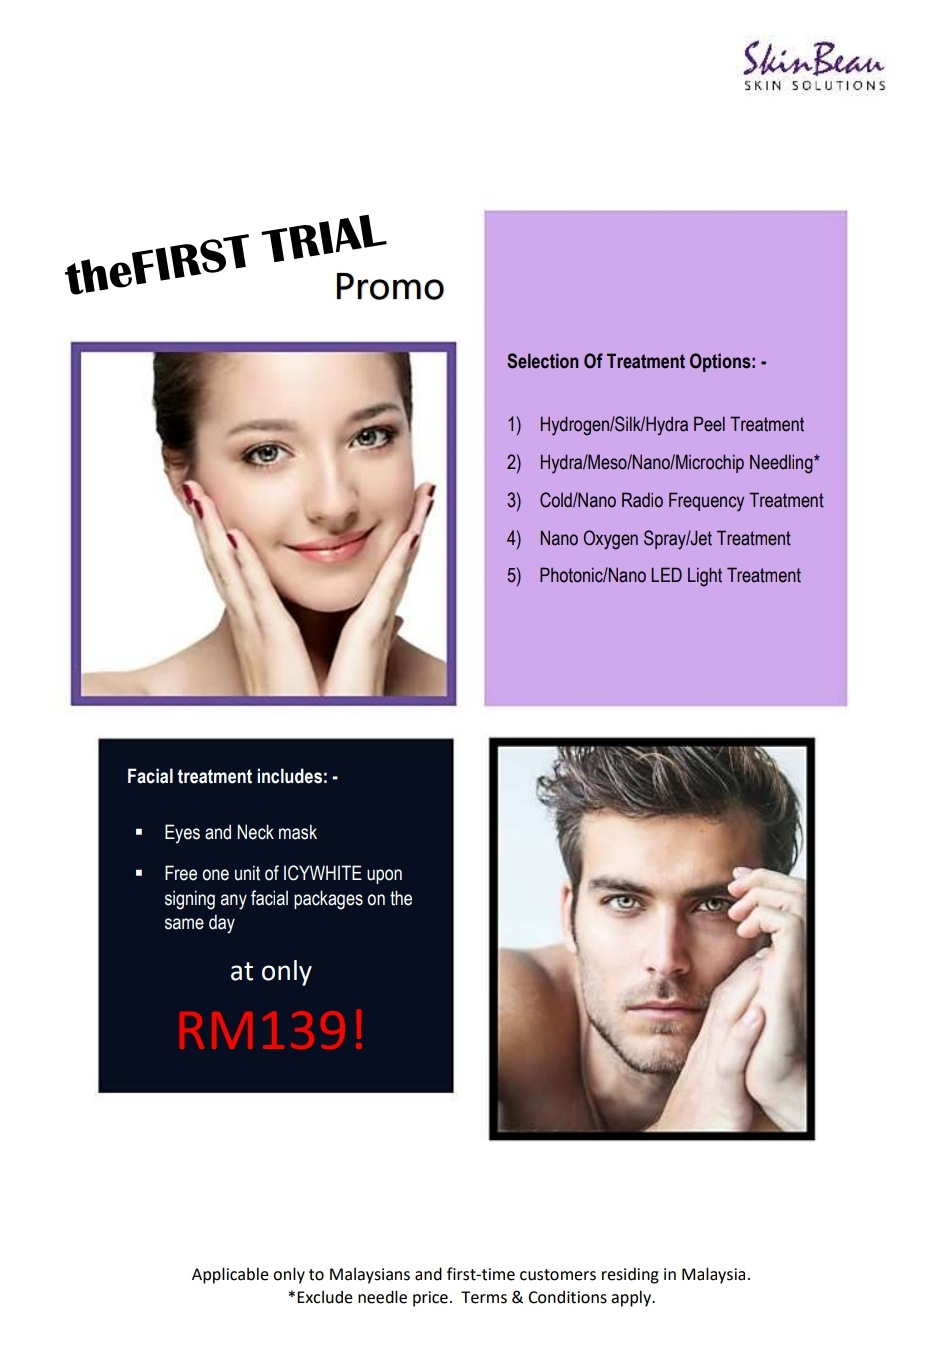 skinbeau facial treatment promotion